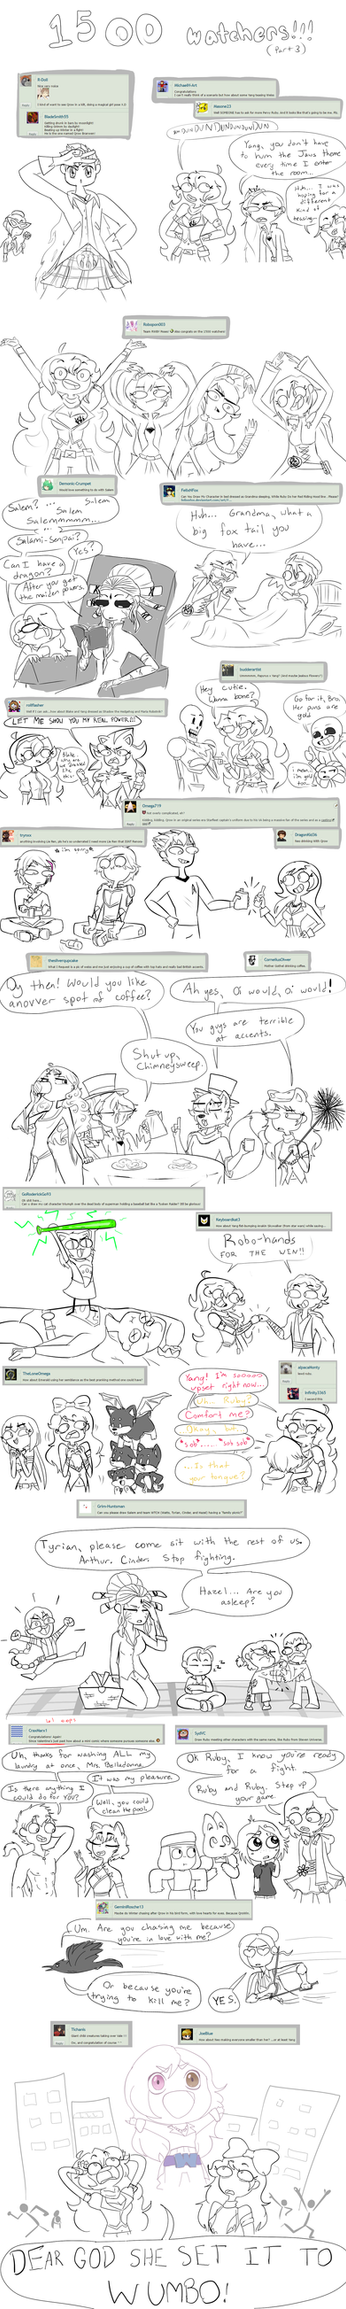 (UPDATED) 1500 Watch Doodles Part 3 and 4 by JumpinJammies